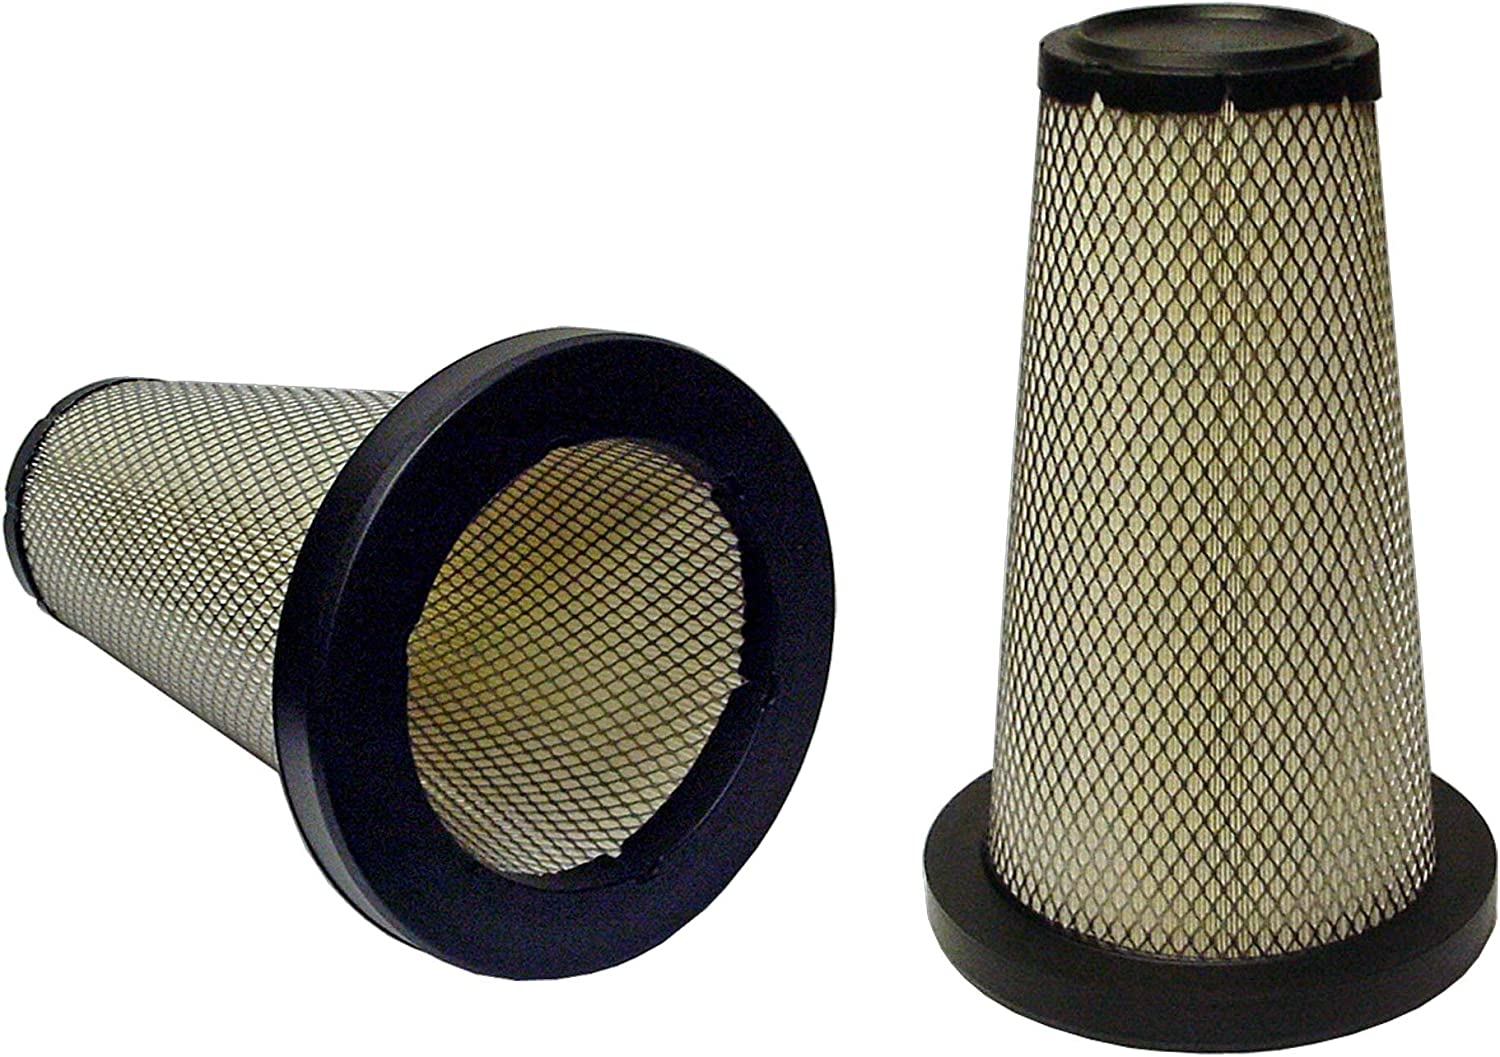 WIX Filters Pack of 1 46522 Heavy Duty Air Filter